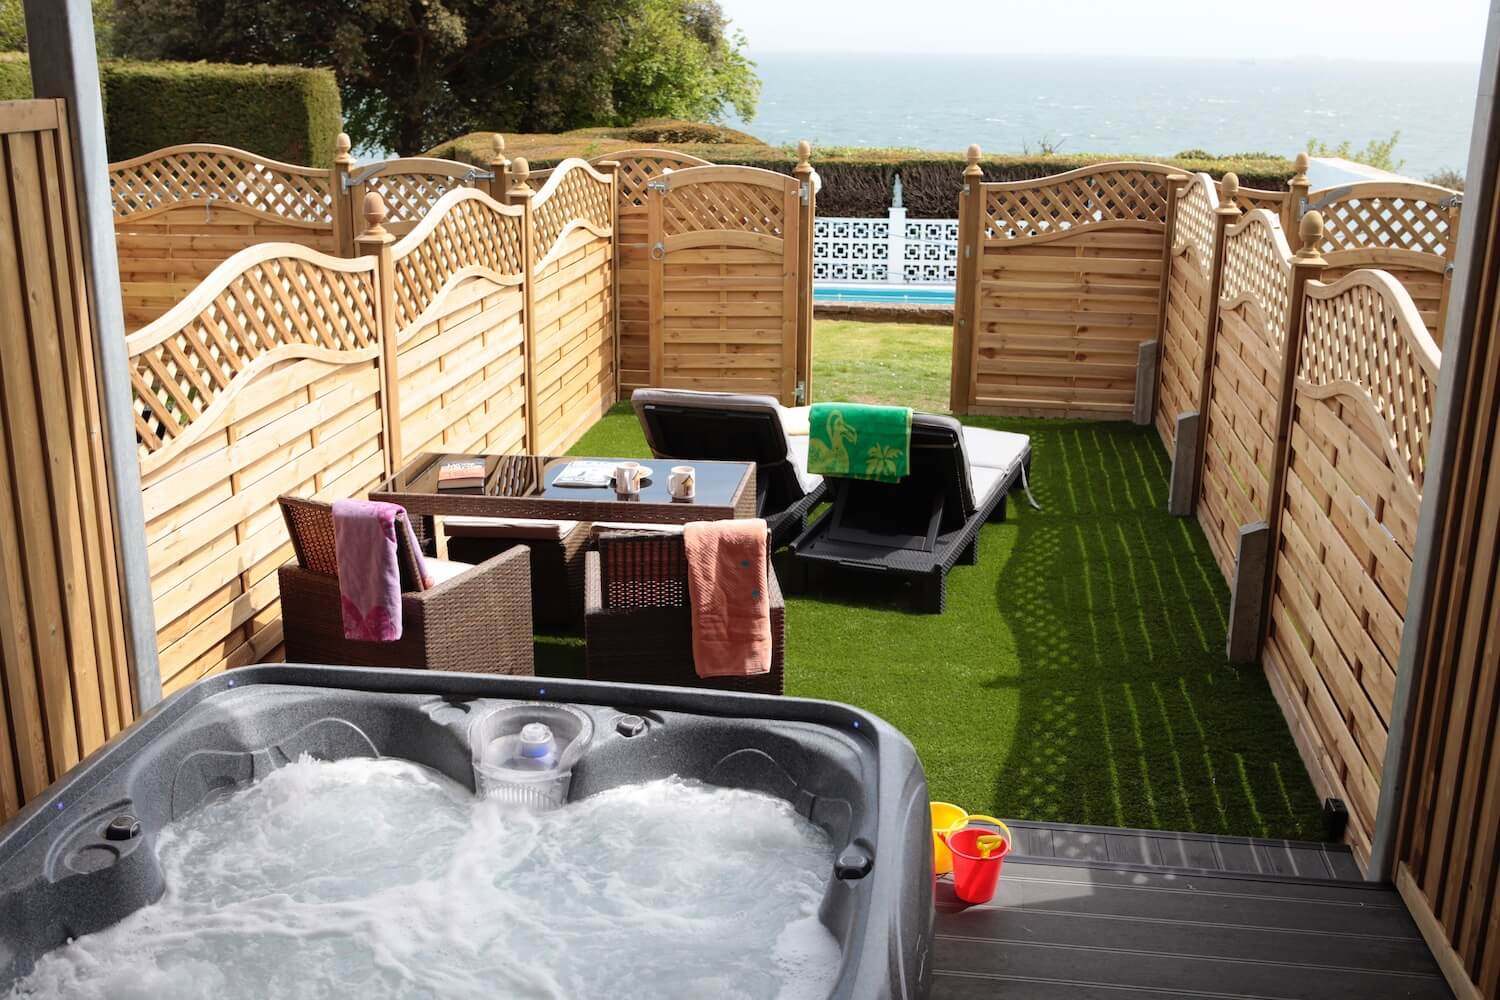 Superior Garden Room with Private Garden, Patio & Hot Tub, Luccombe Hall Hotel, SHanklin, Isle of Wght